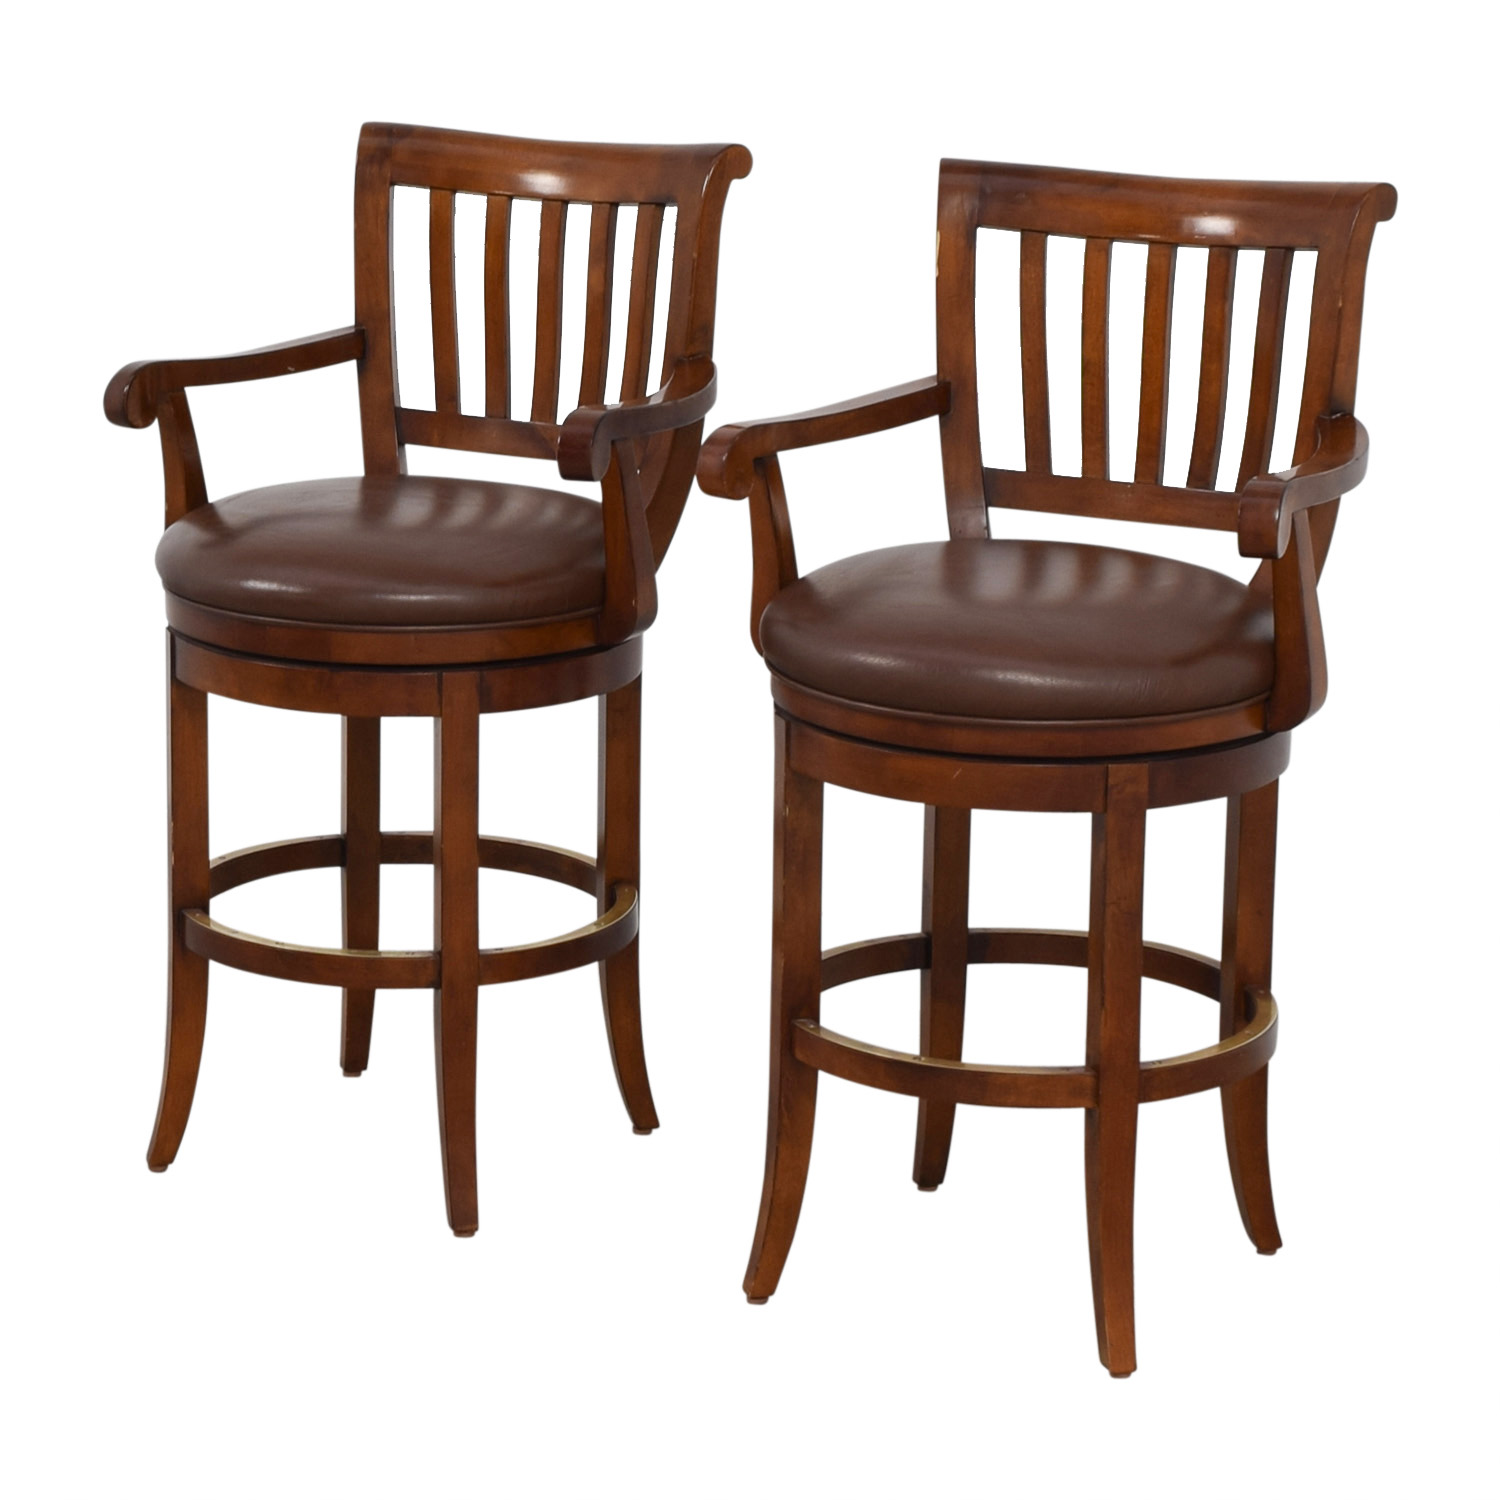 79 Off Ethan Allen Ethan Allen Brown Leather Stools Chairs